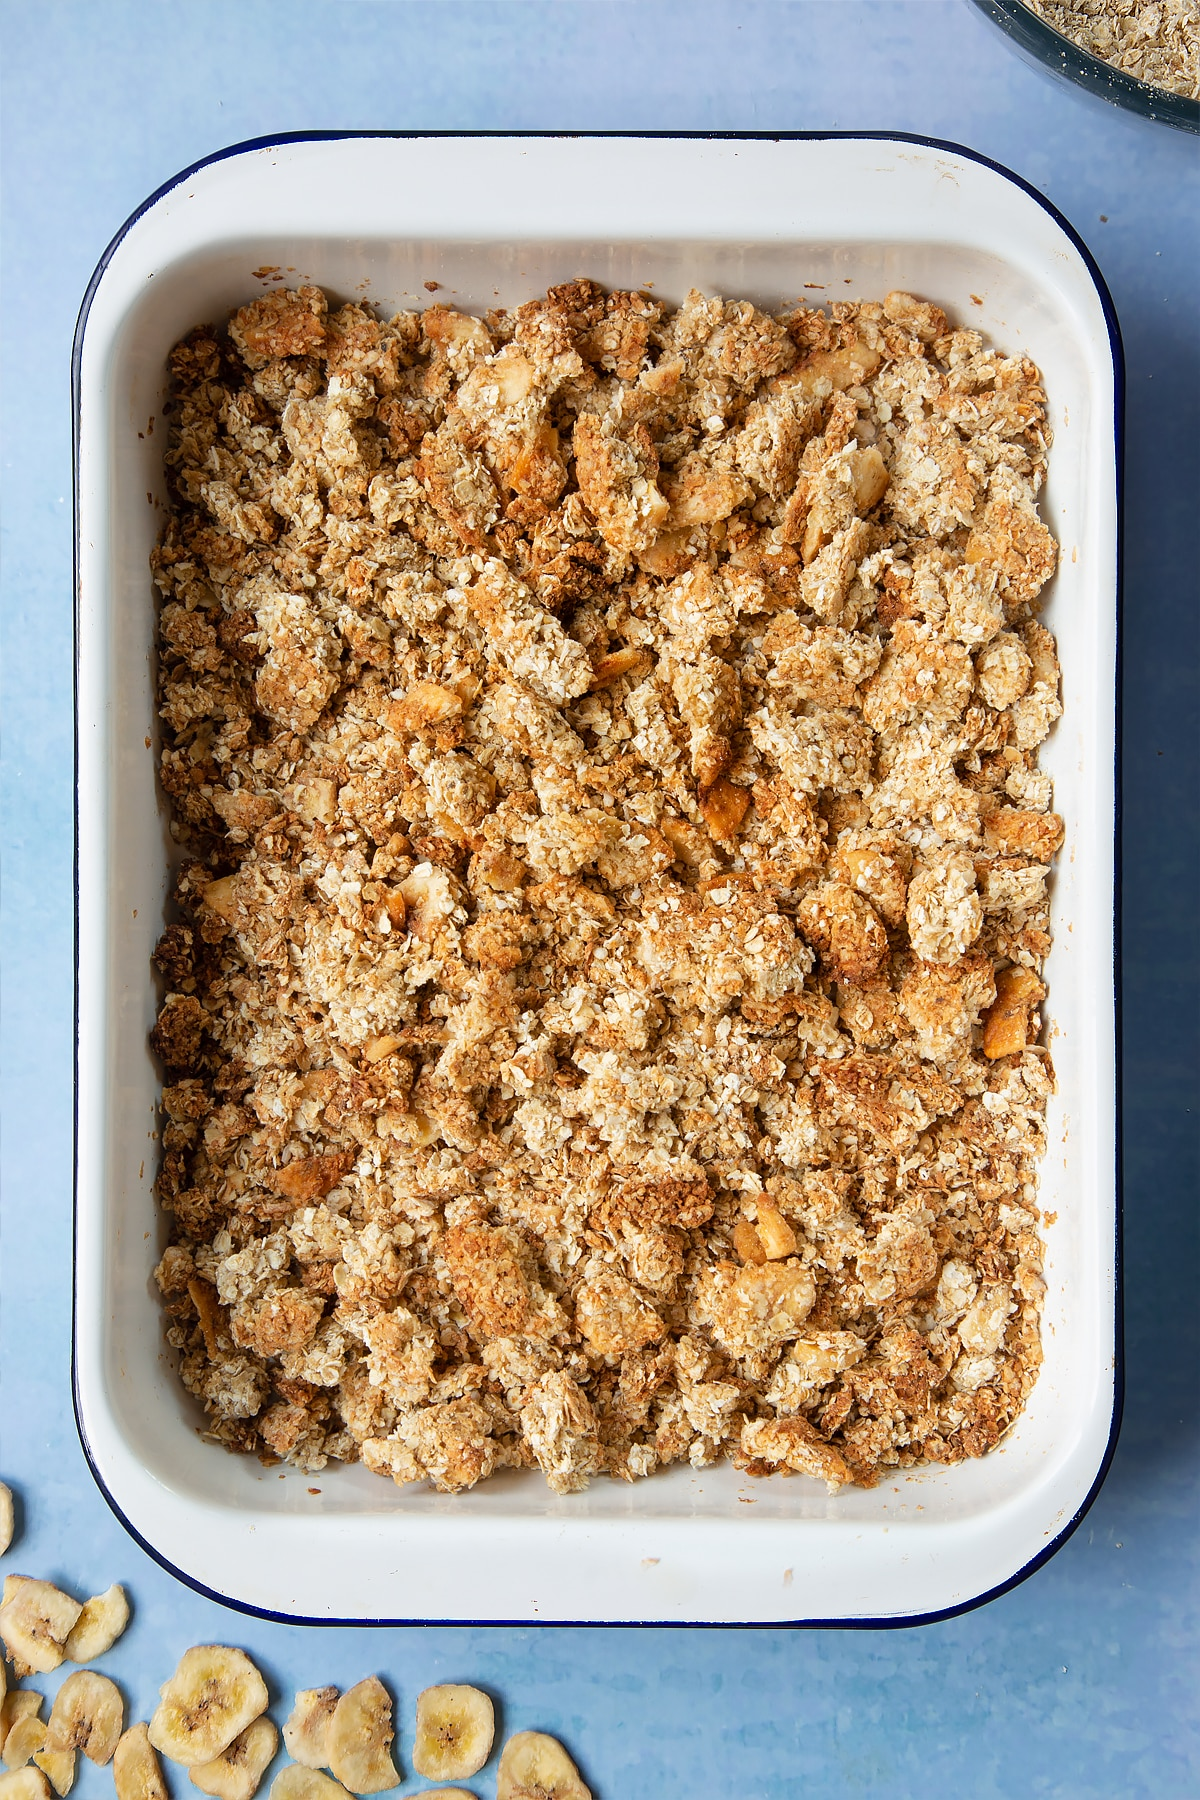 A white, medium-sized roasting tray filled with crumbled banana coconut granola.